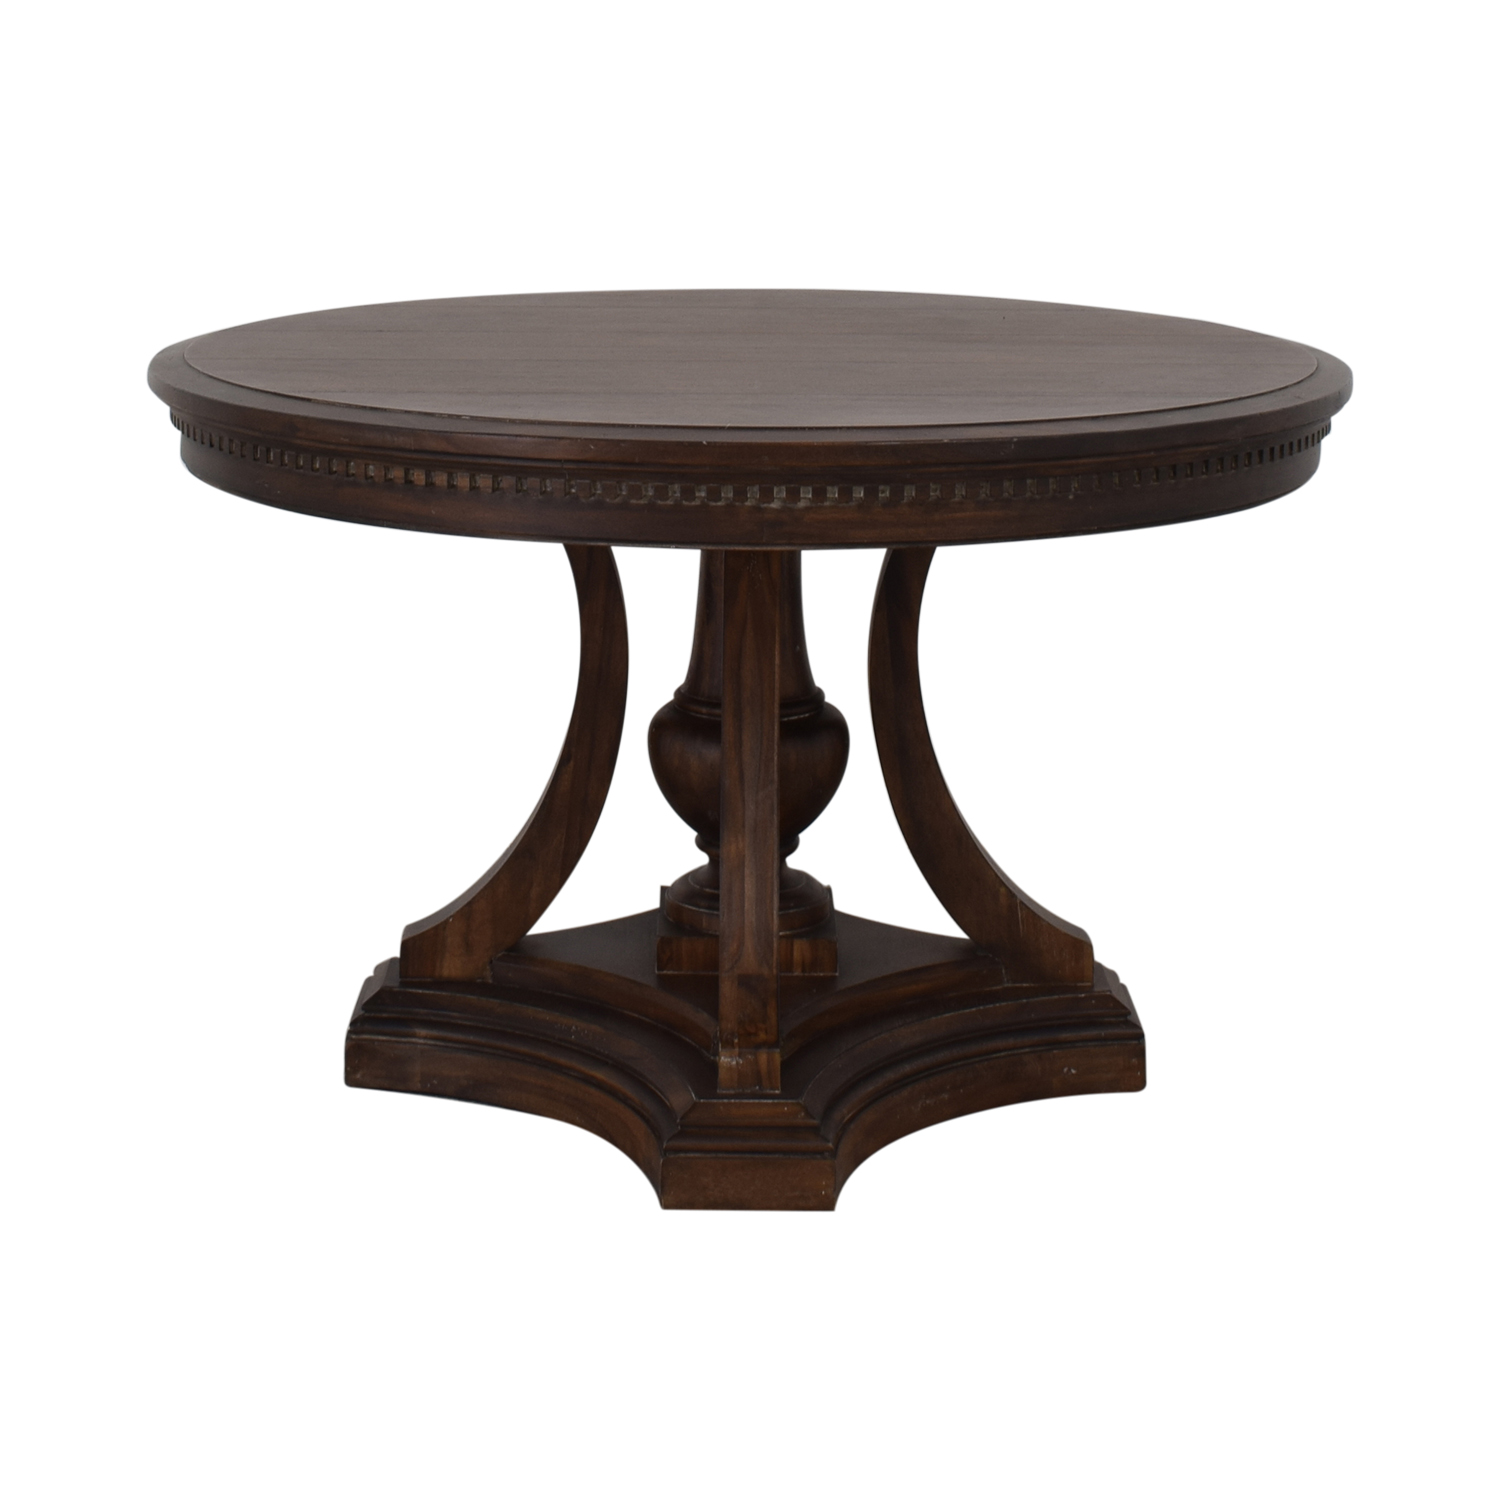 Restoration Hardware Restoration Hardware St James Round Dining Table coupon